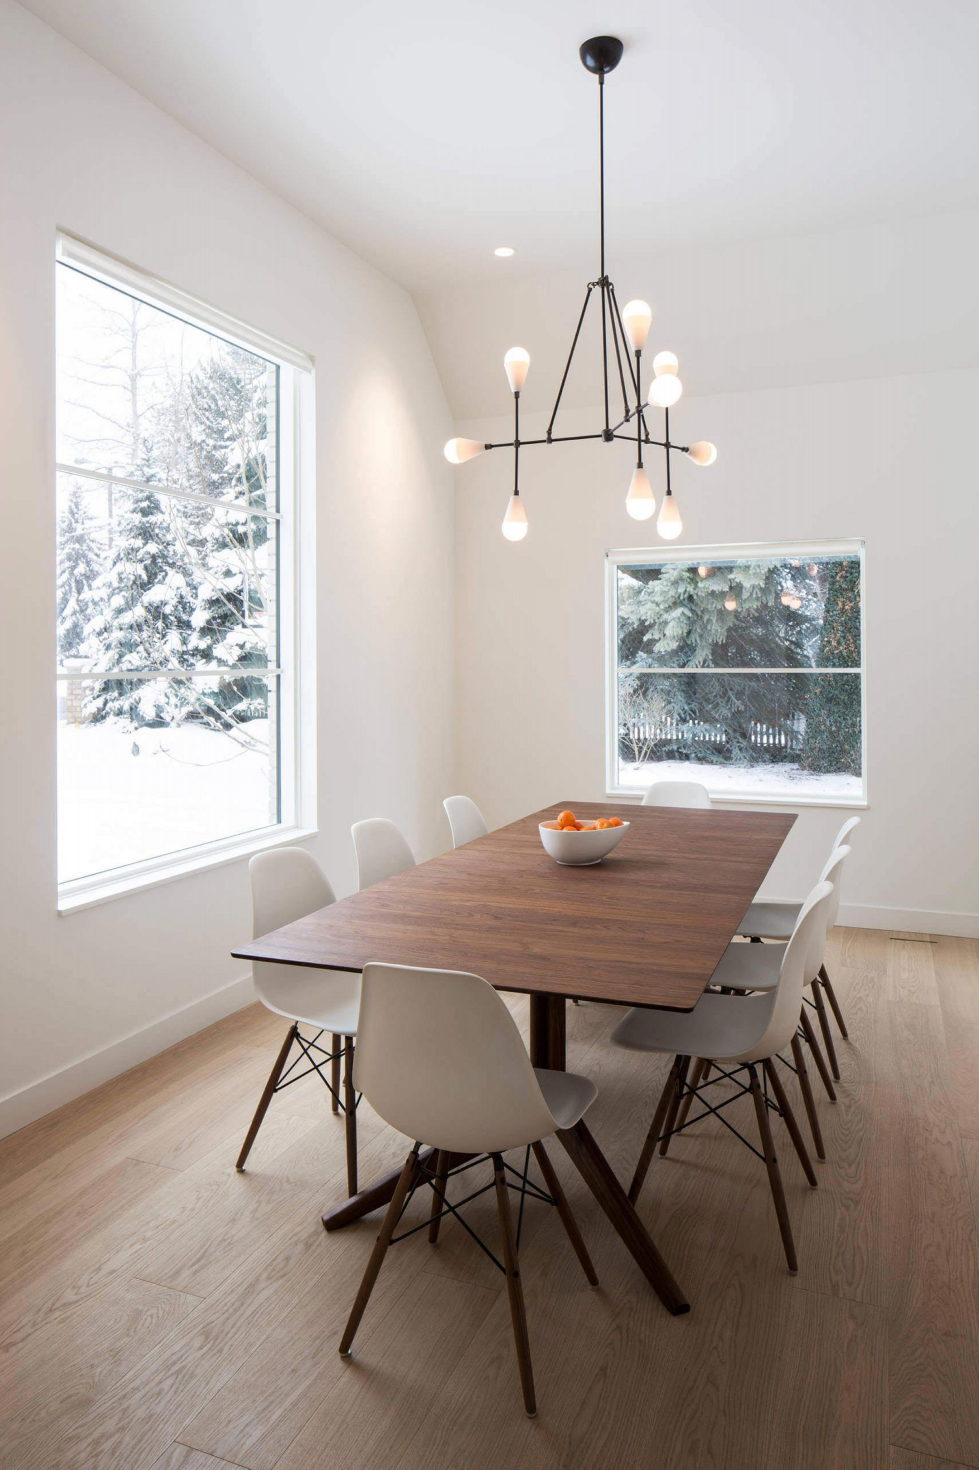 The private house Hilsden in Scandinavian style in Salt Lake City from Lloyd Architects studio 4